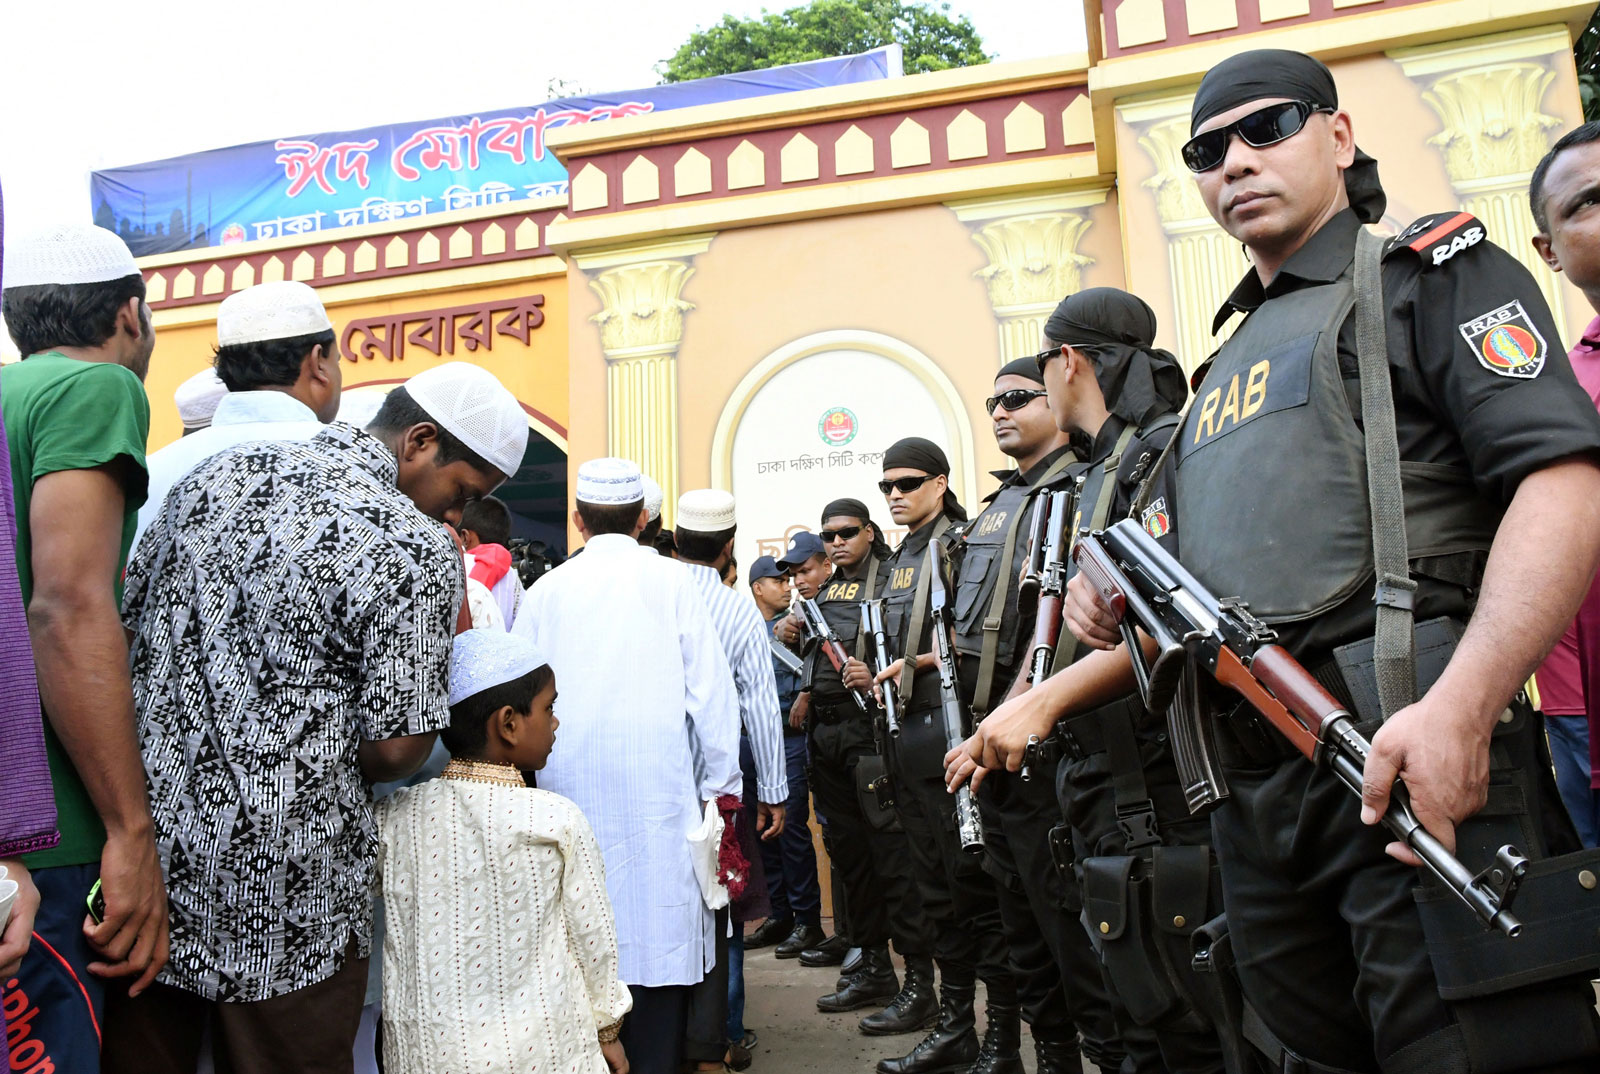 Muslims lined up for prayer with Bangladeshi security forces looking on, Dhaka, Bangladesh, July 7, 2016